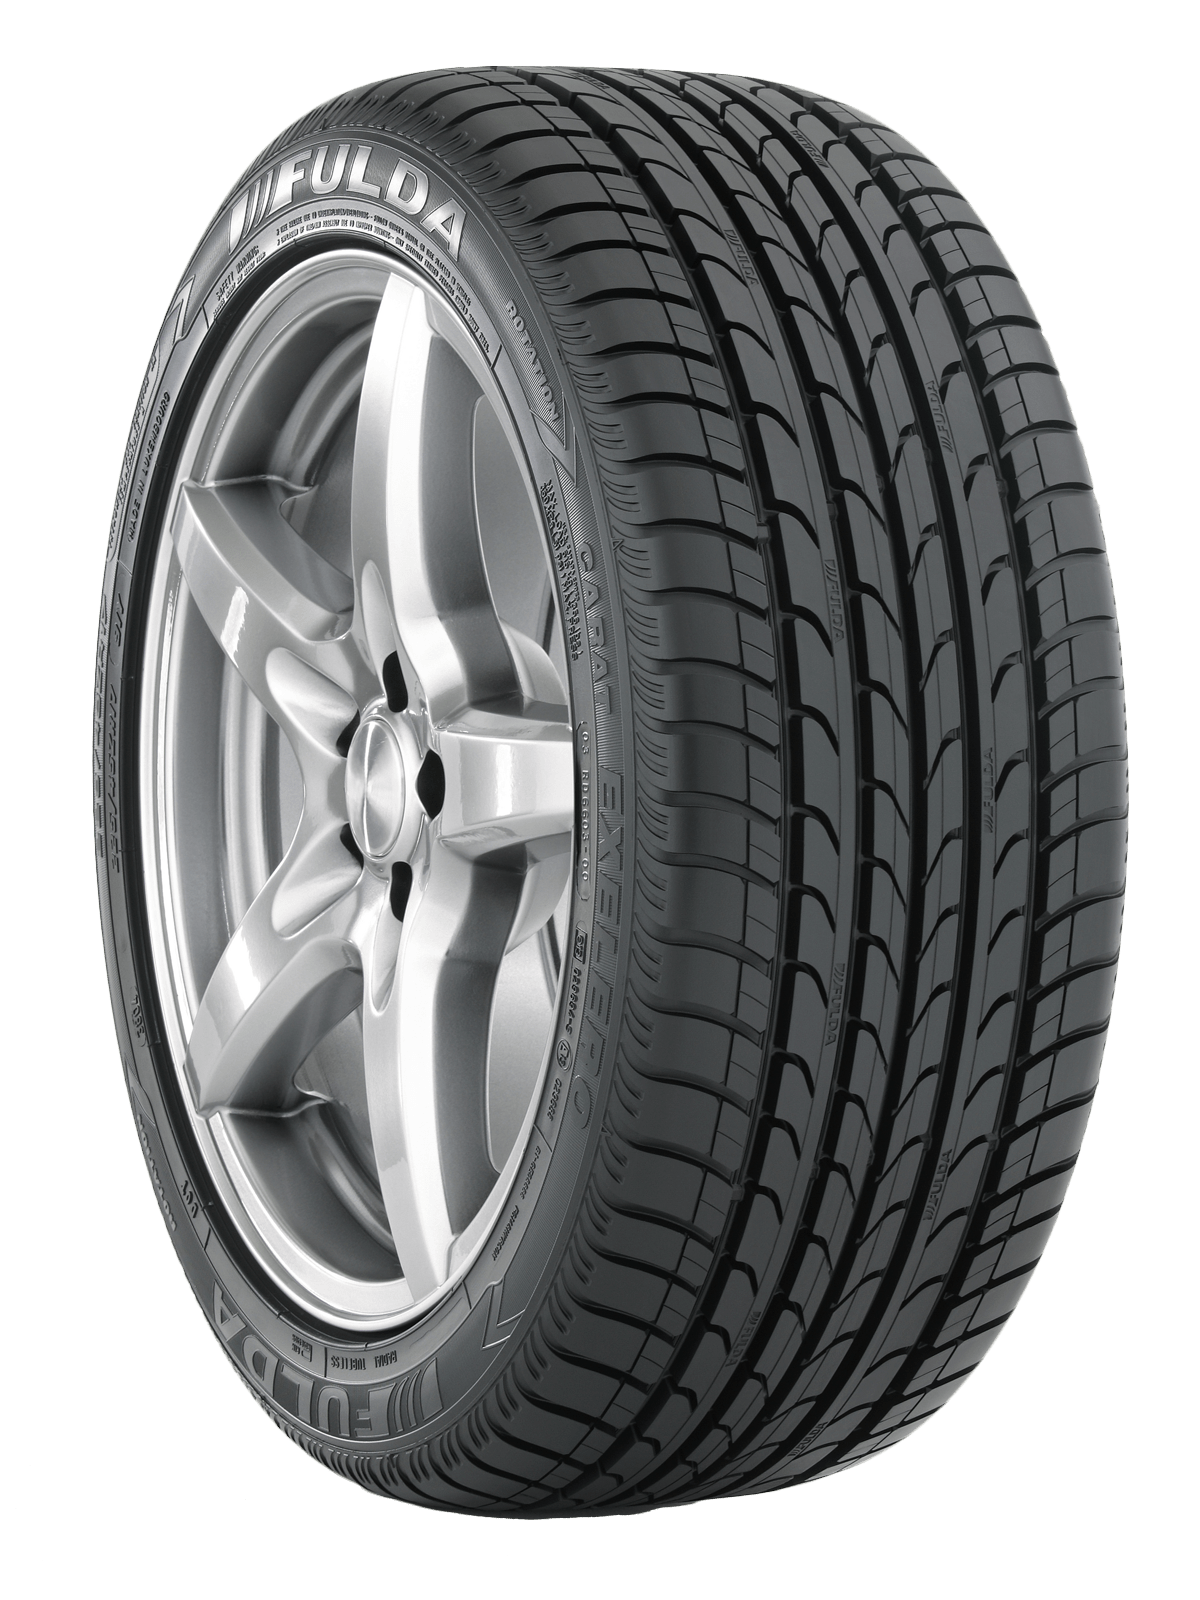 Tyre transparent png stickpng. Wheel clipart flat tire